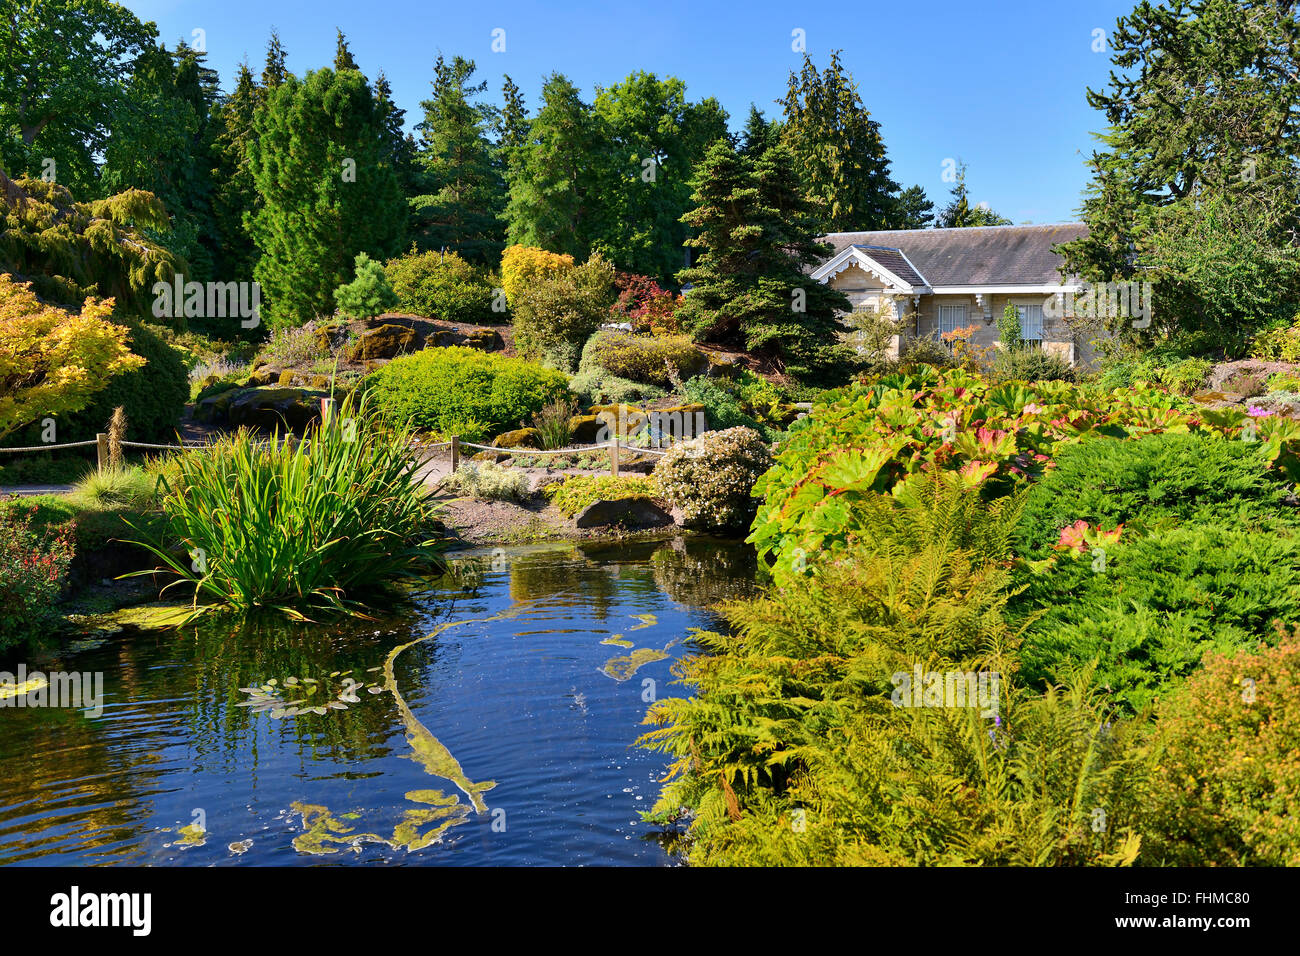 Rock garden and pond, Royal Botanic Garden, Edinburgh, Scotland, UK - Stock Image